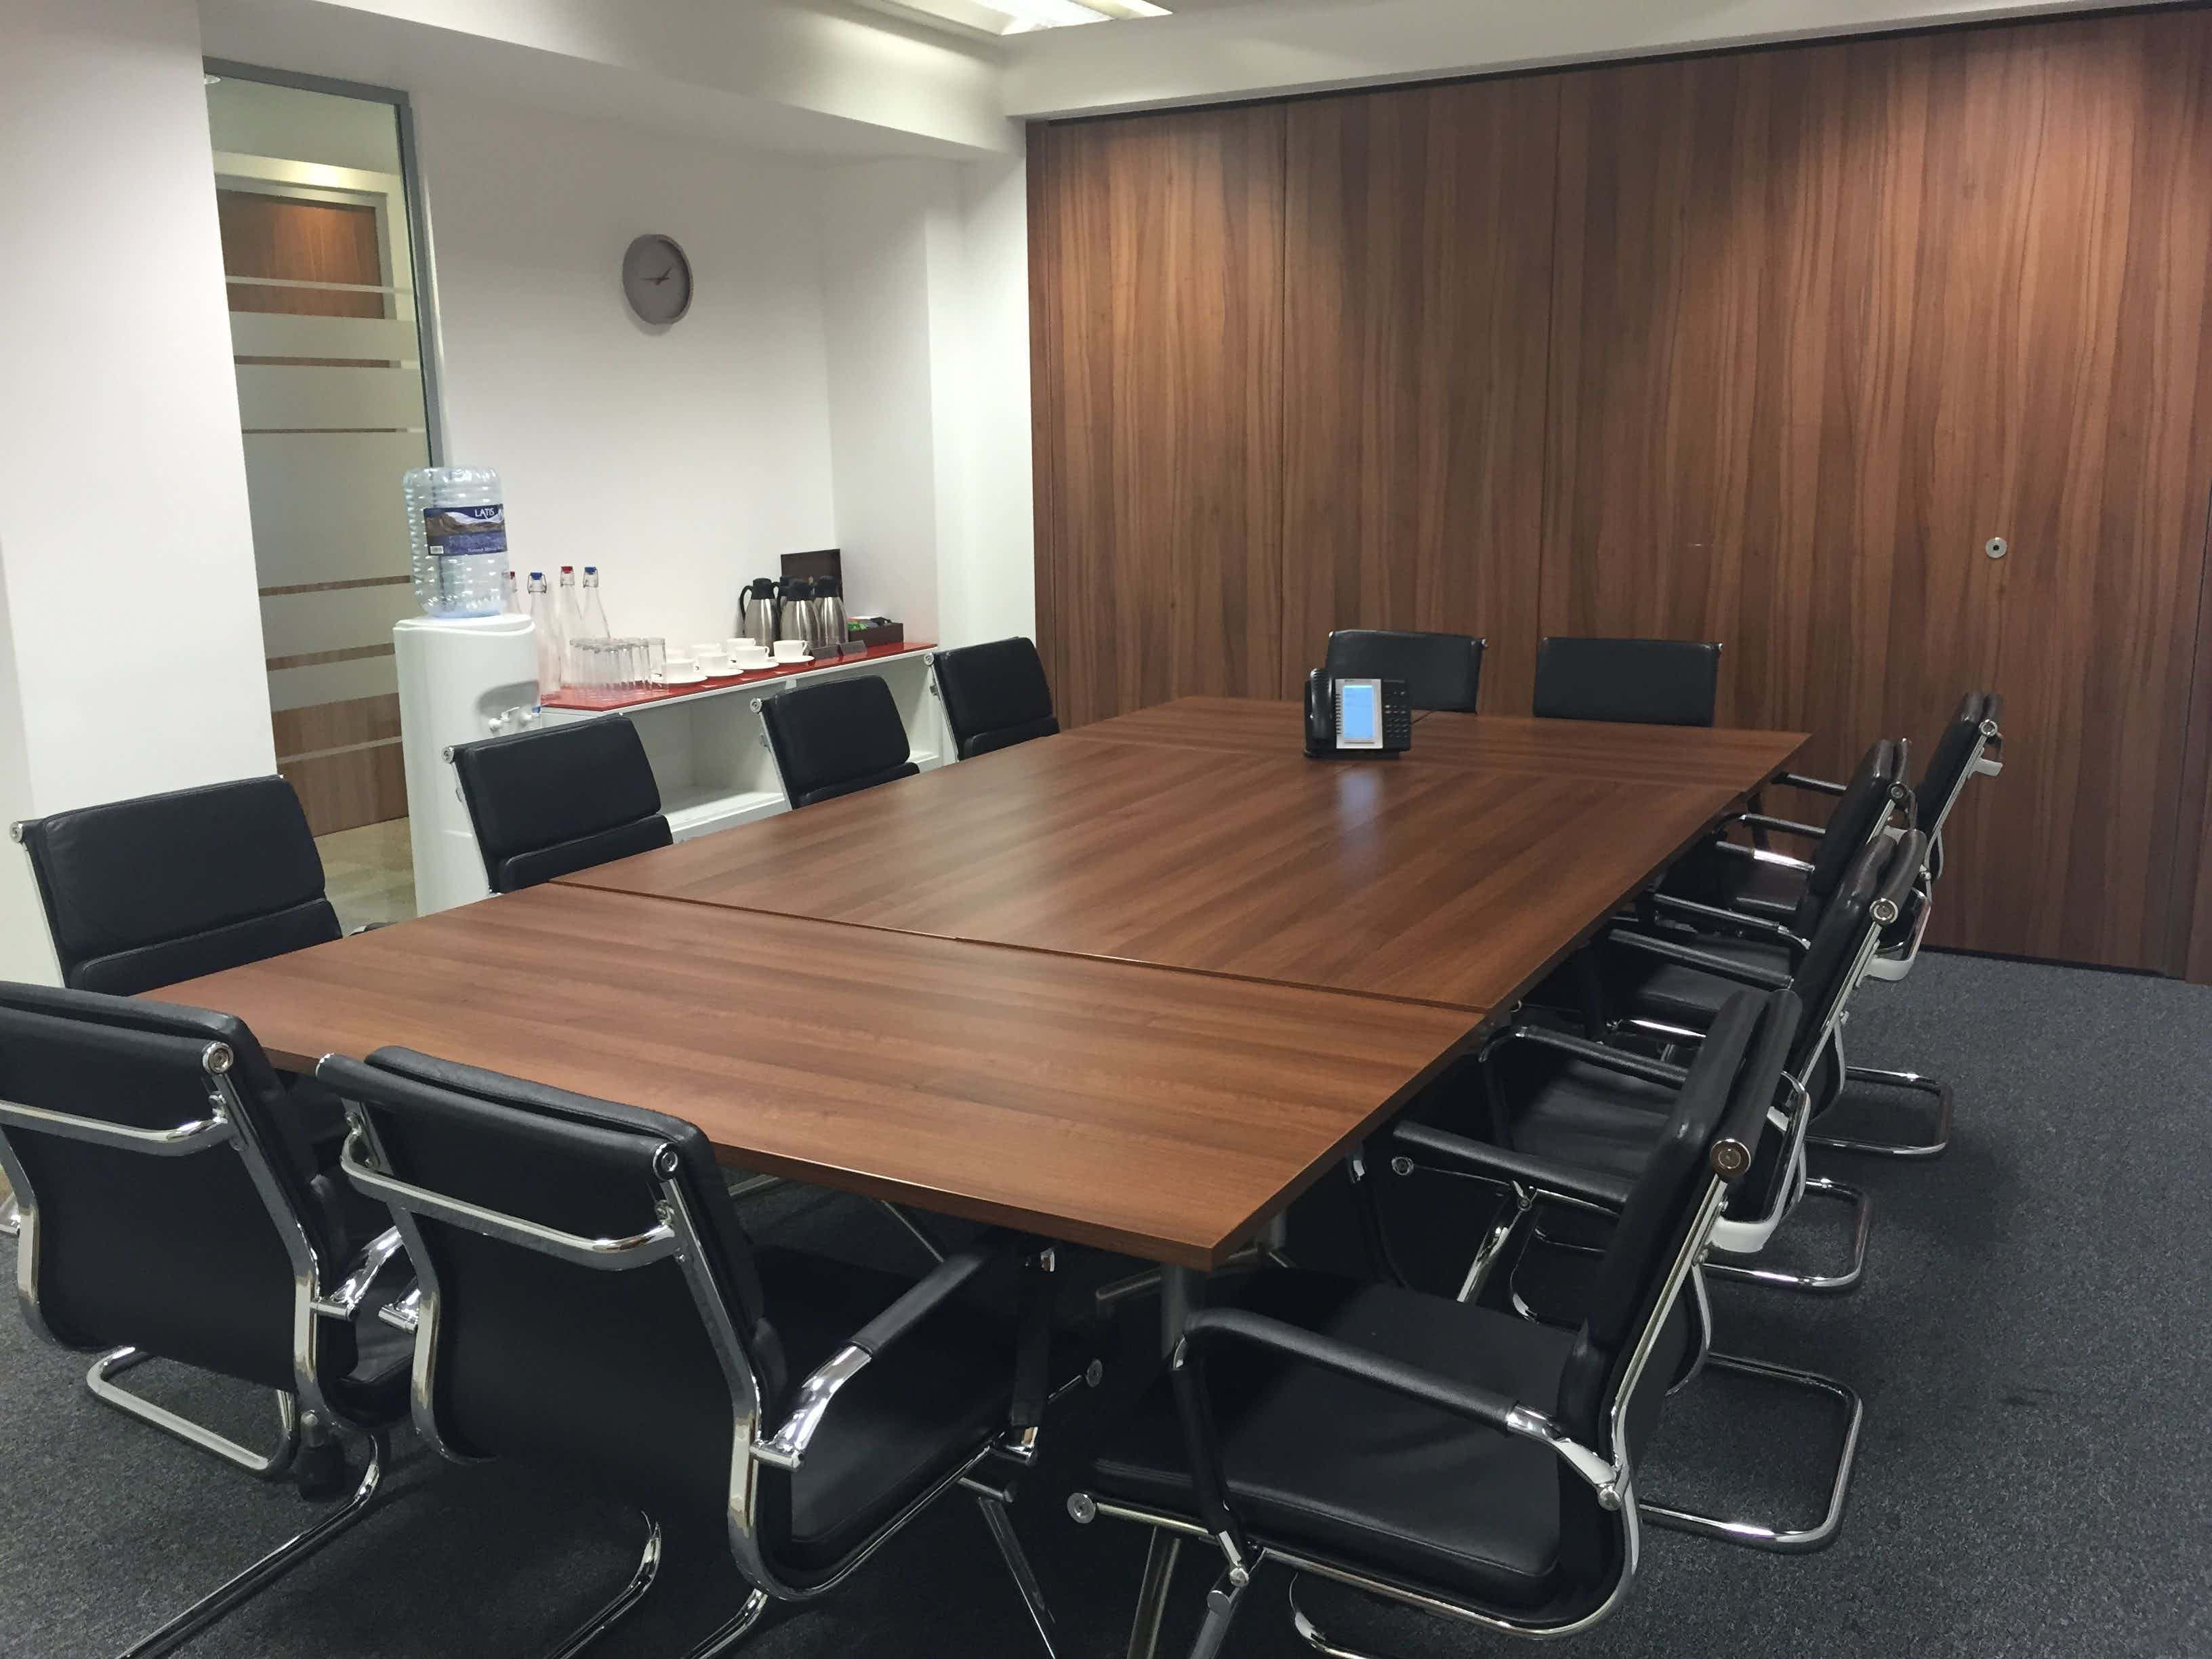 Meeting Room 4, Becket House